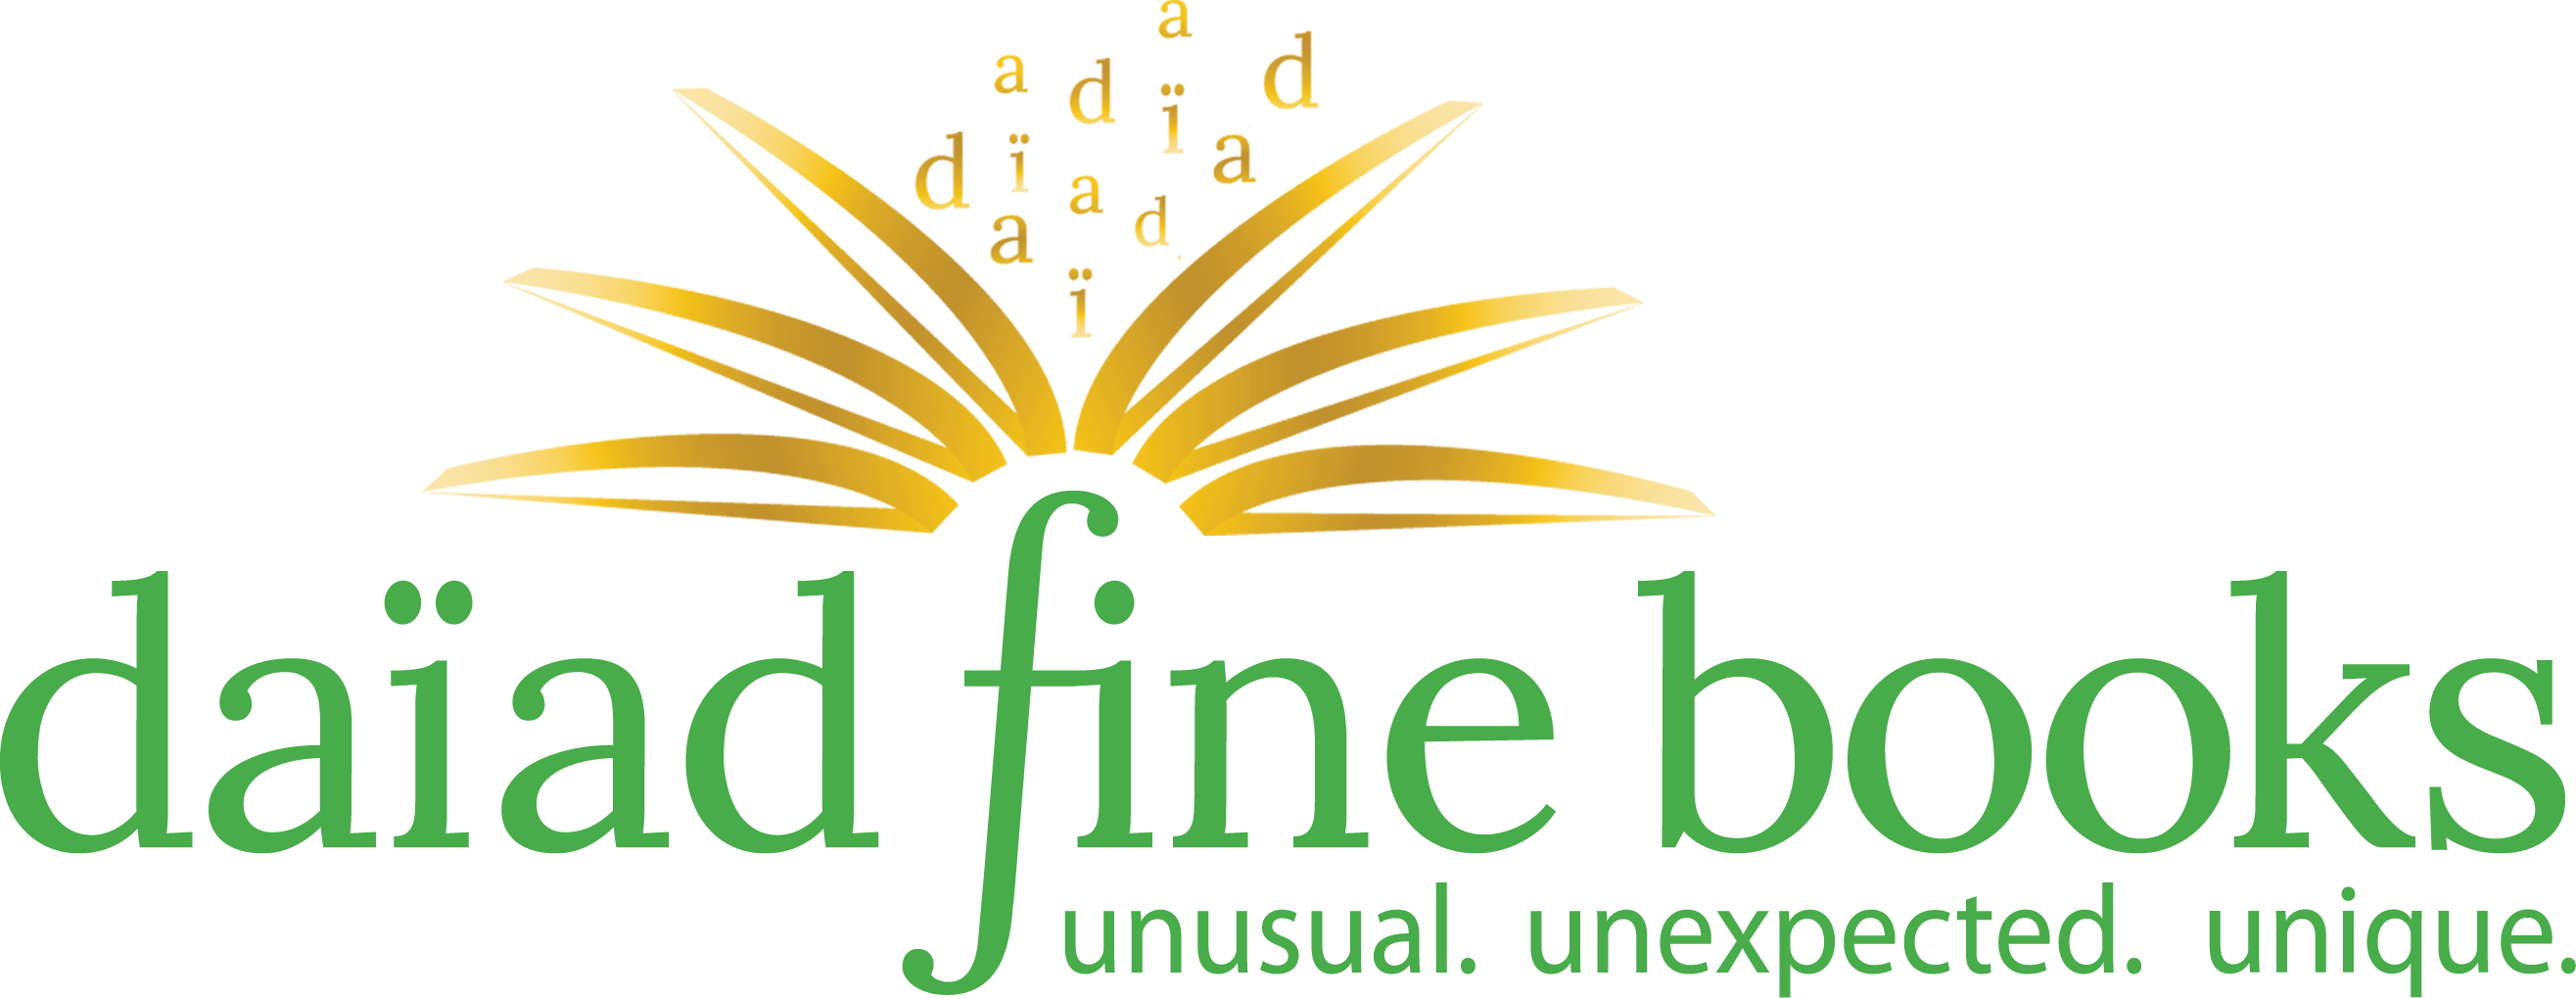 daiad fine books: unusual. unexpected. unique.